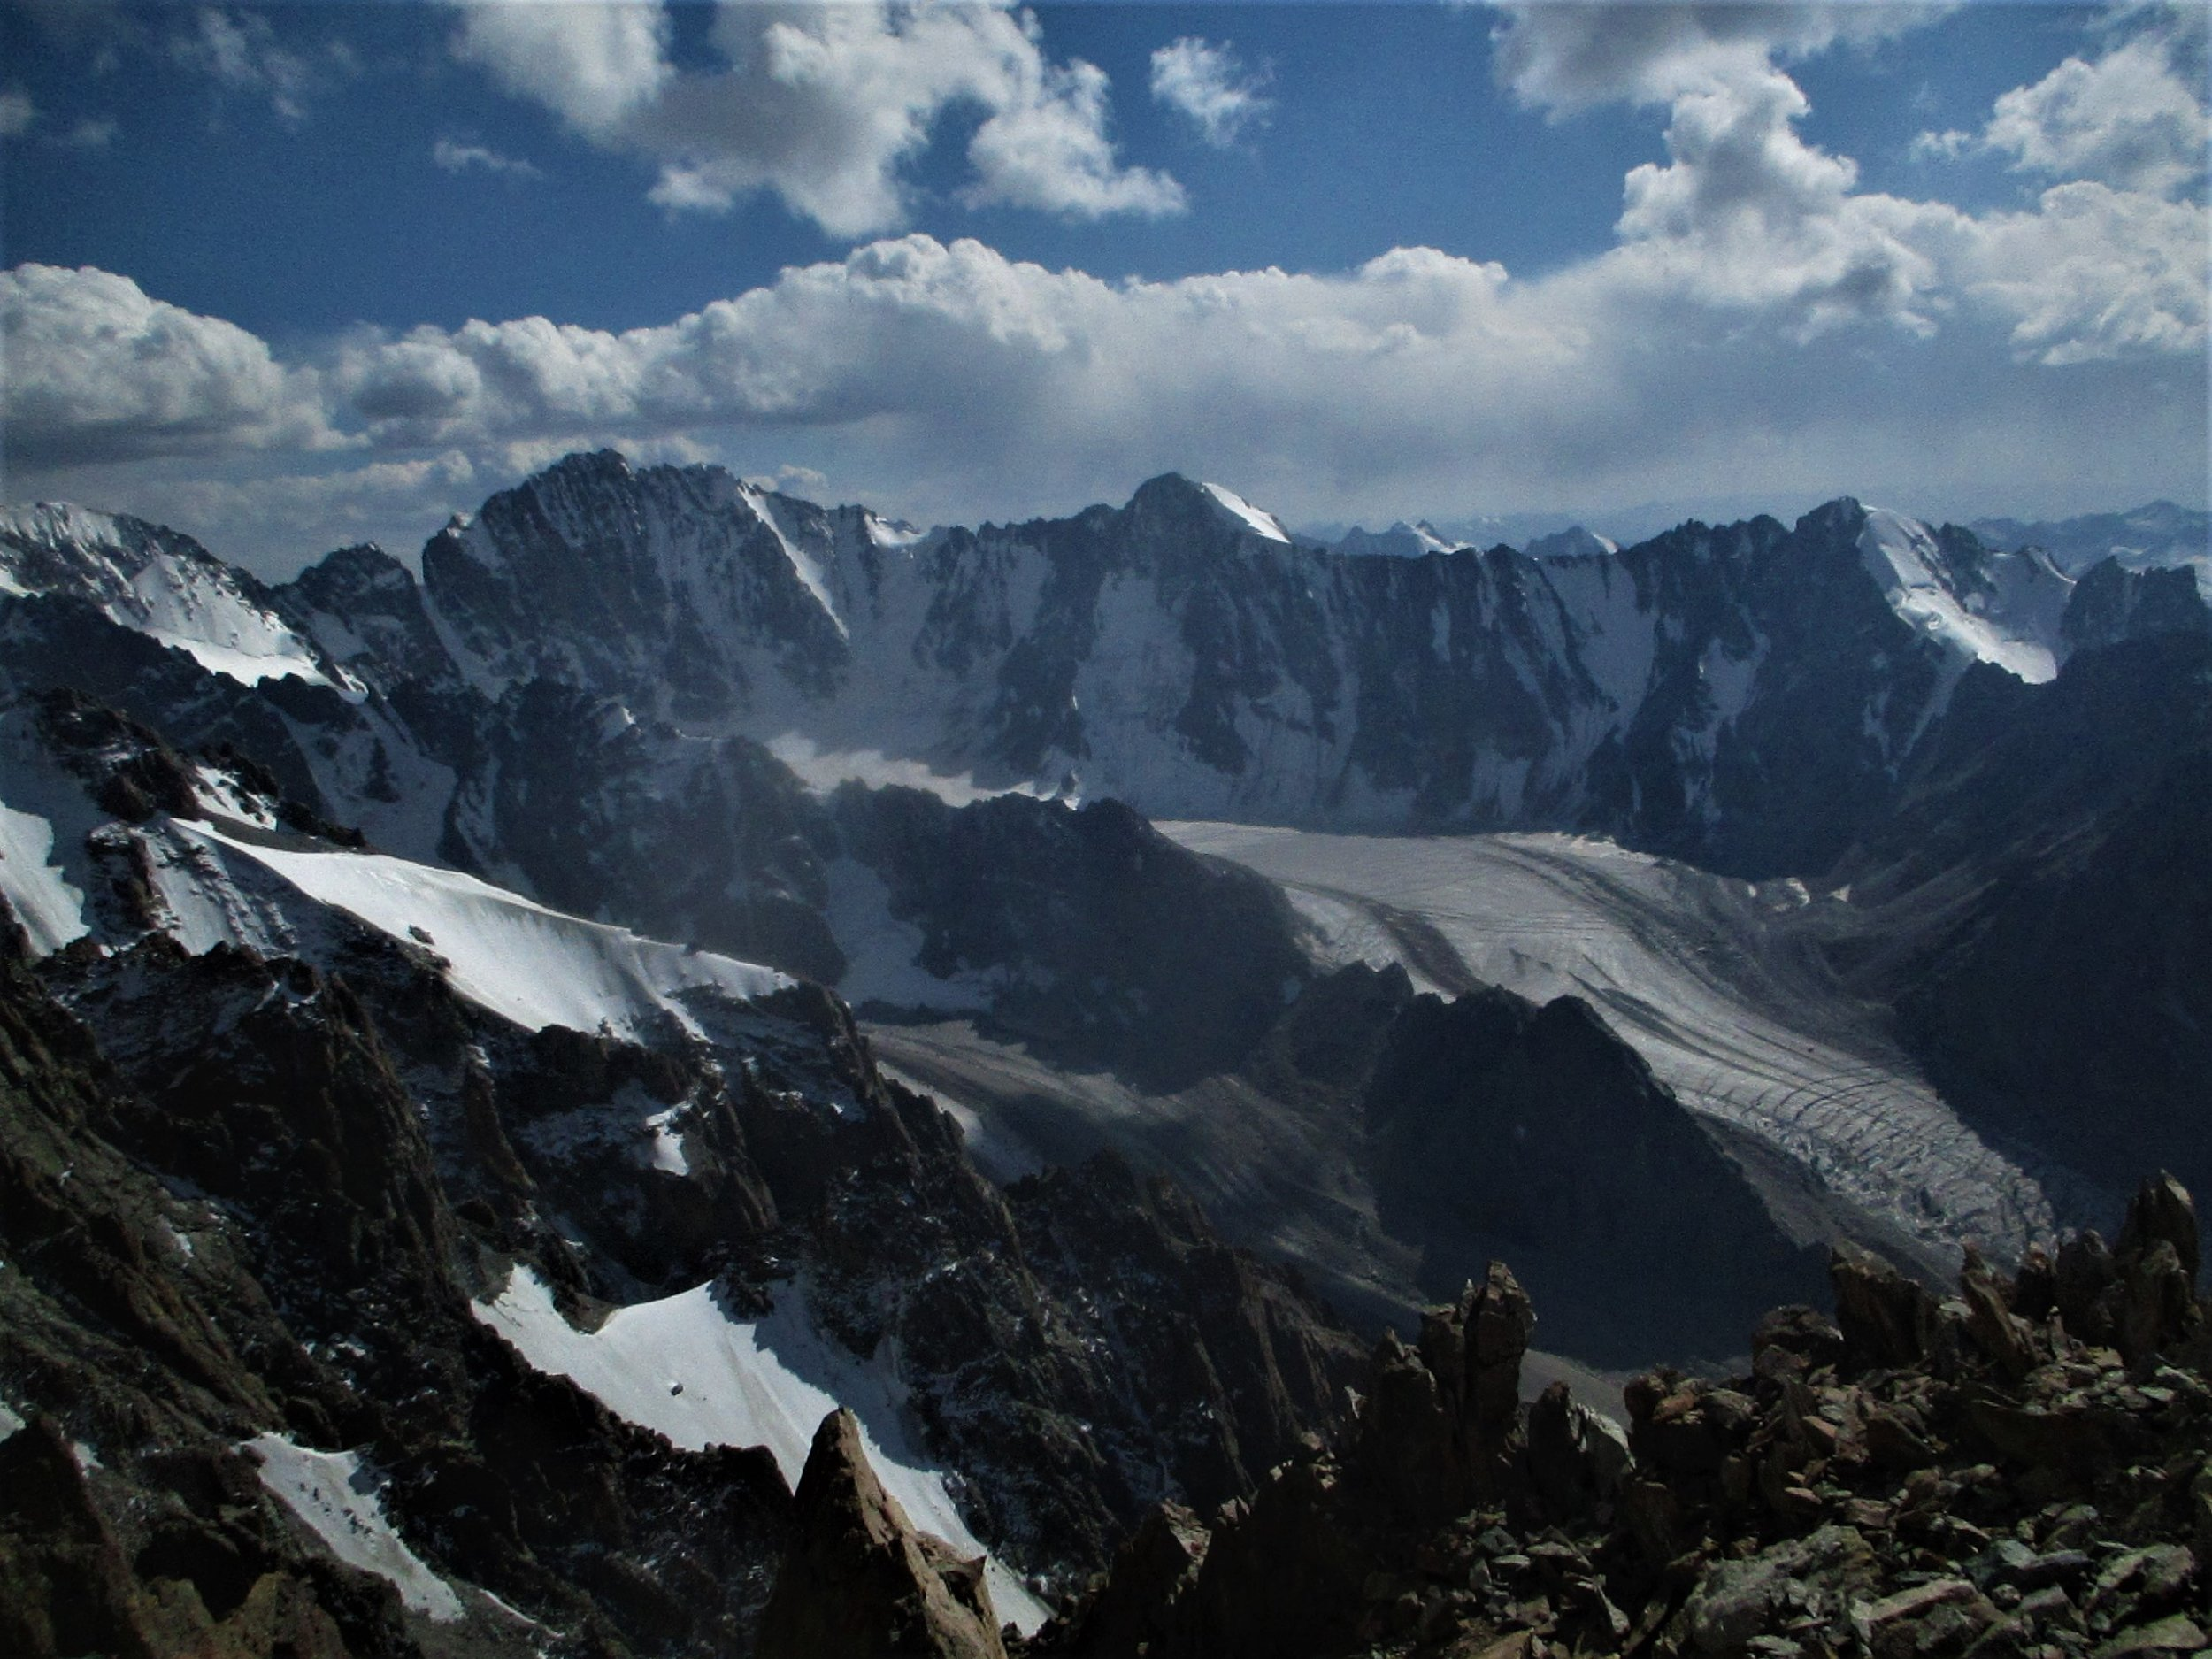 Alps with ice walls and glaciers